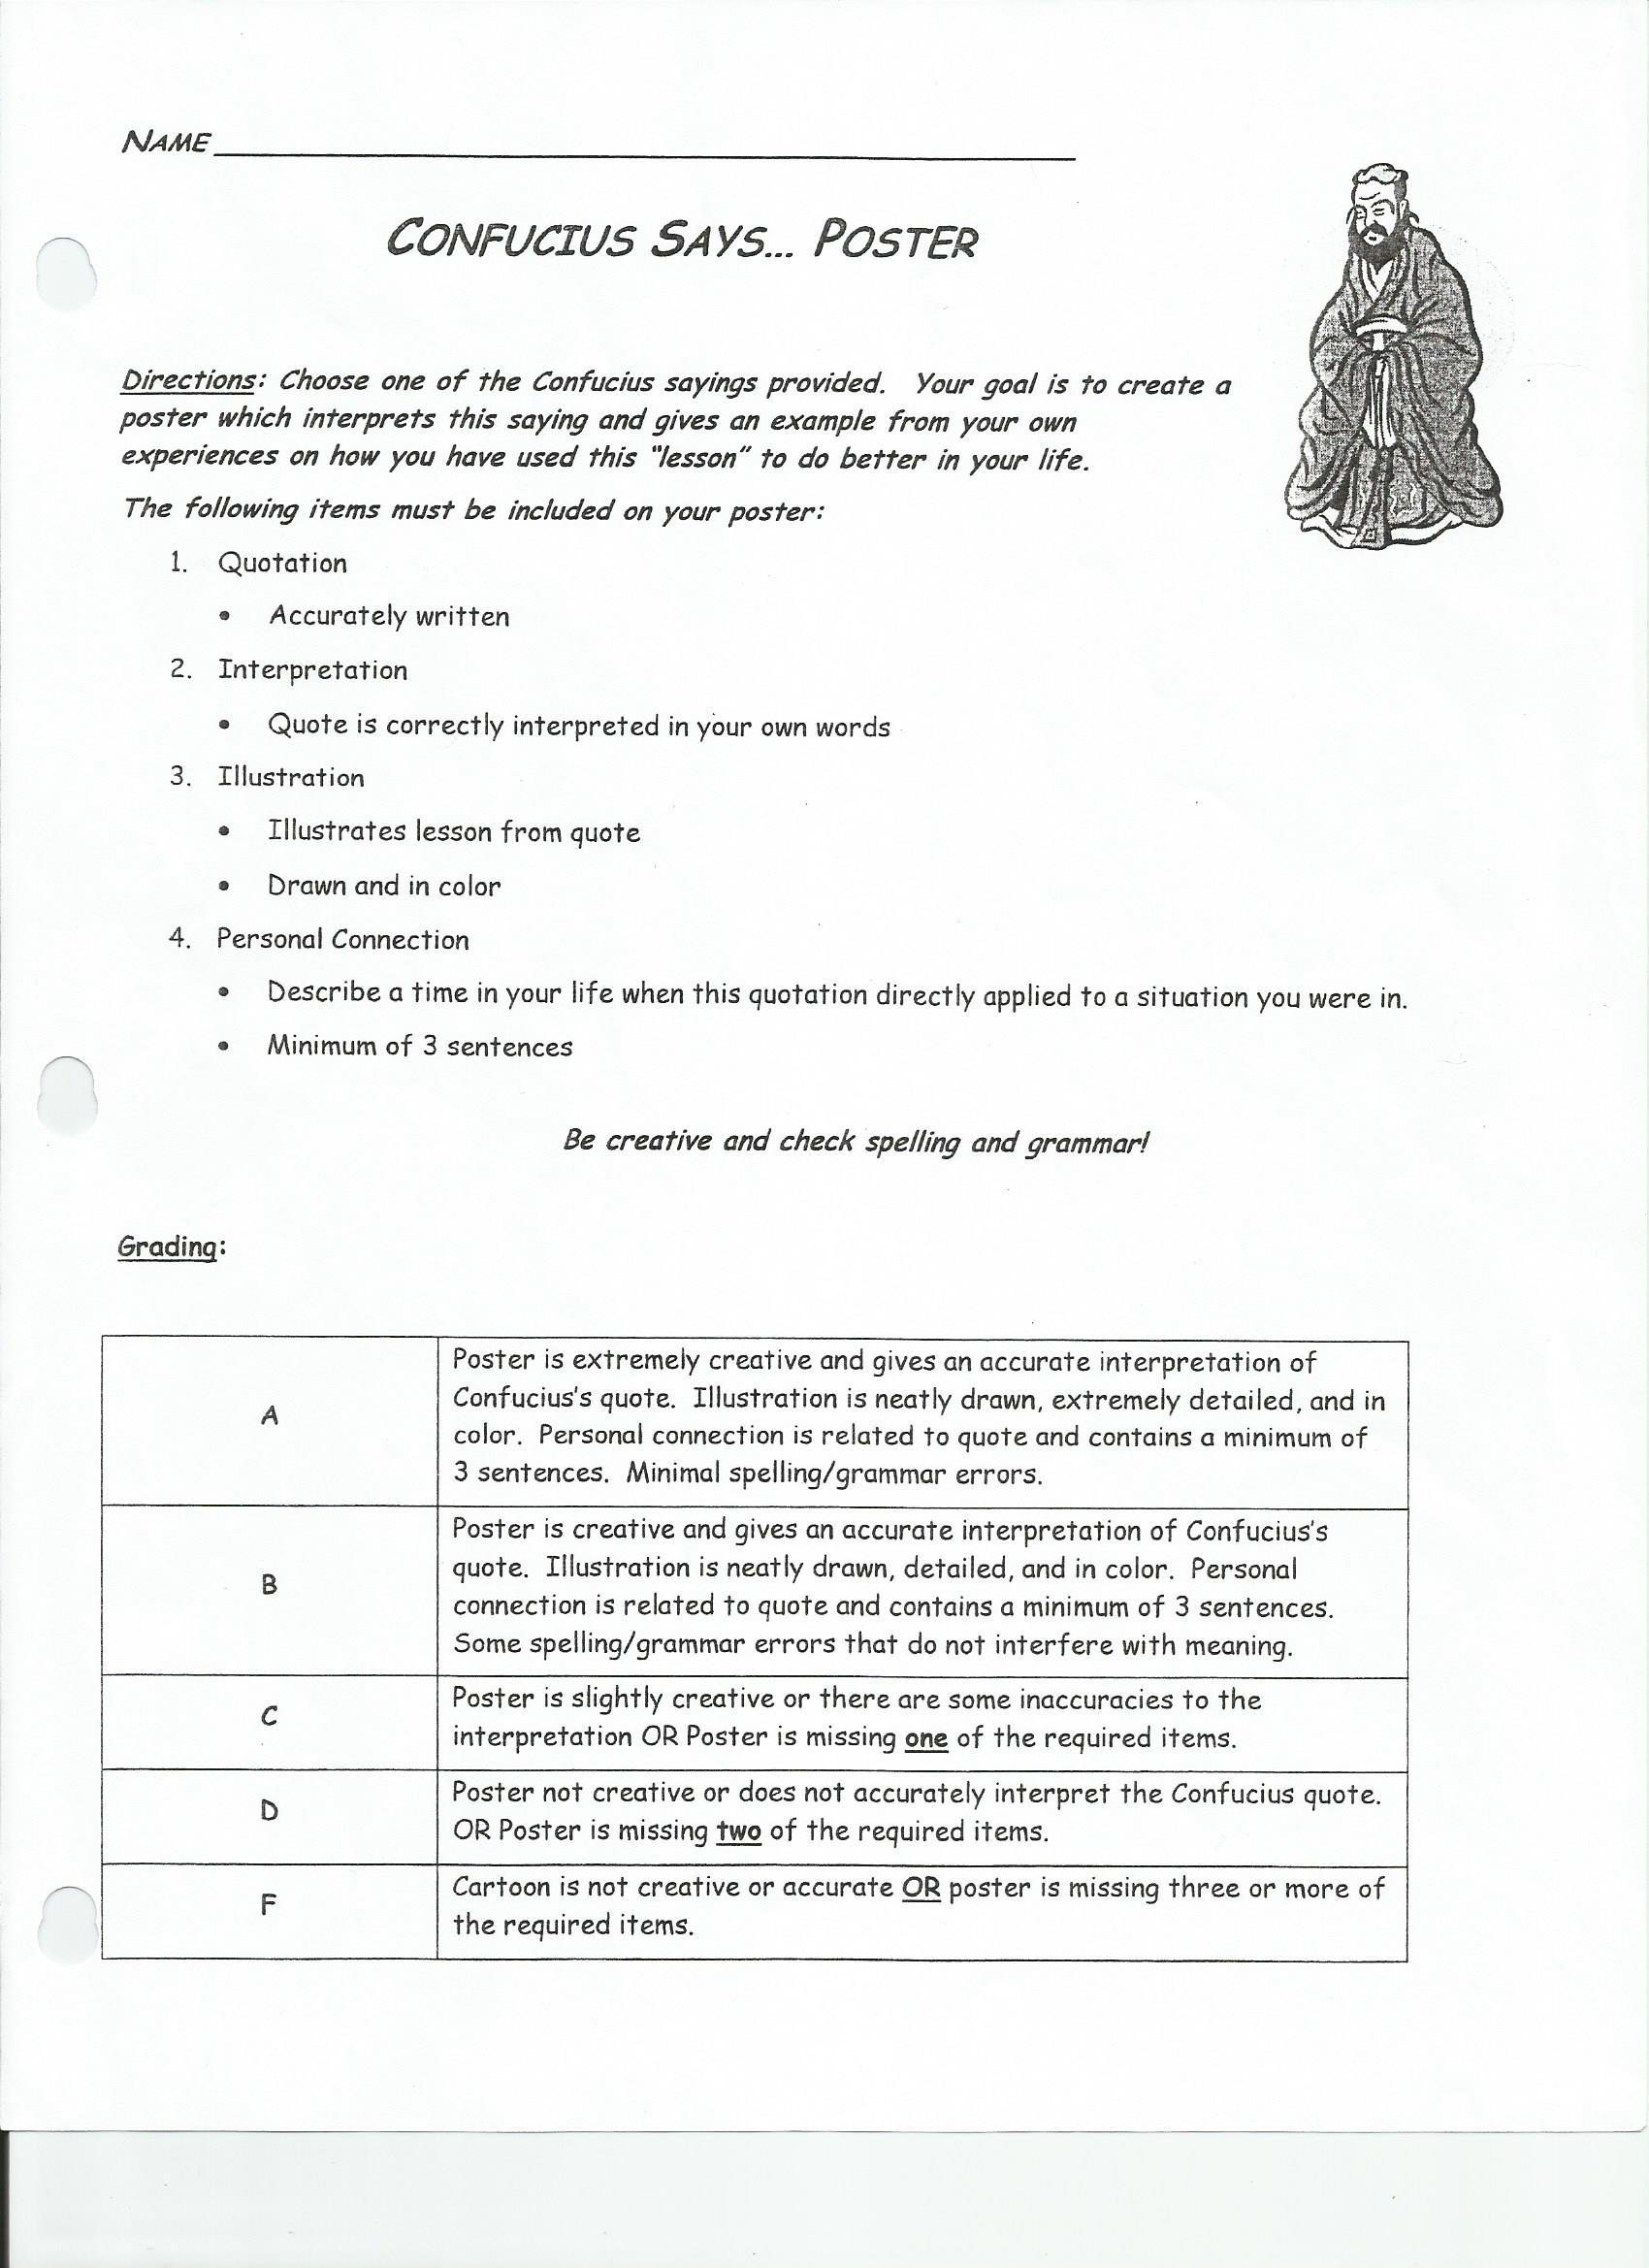 Worksheets Ancient China Worksheets kongkeattikul diana 7c ancient civilizations china chinas dynasties worksheet and timeline confucius says poster rubric page 1